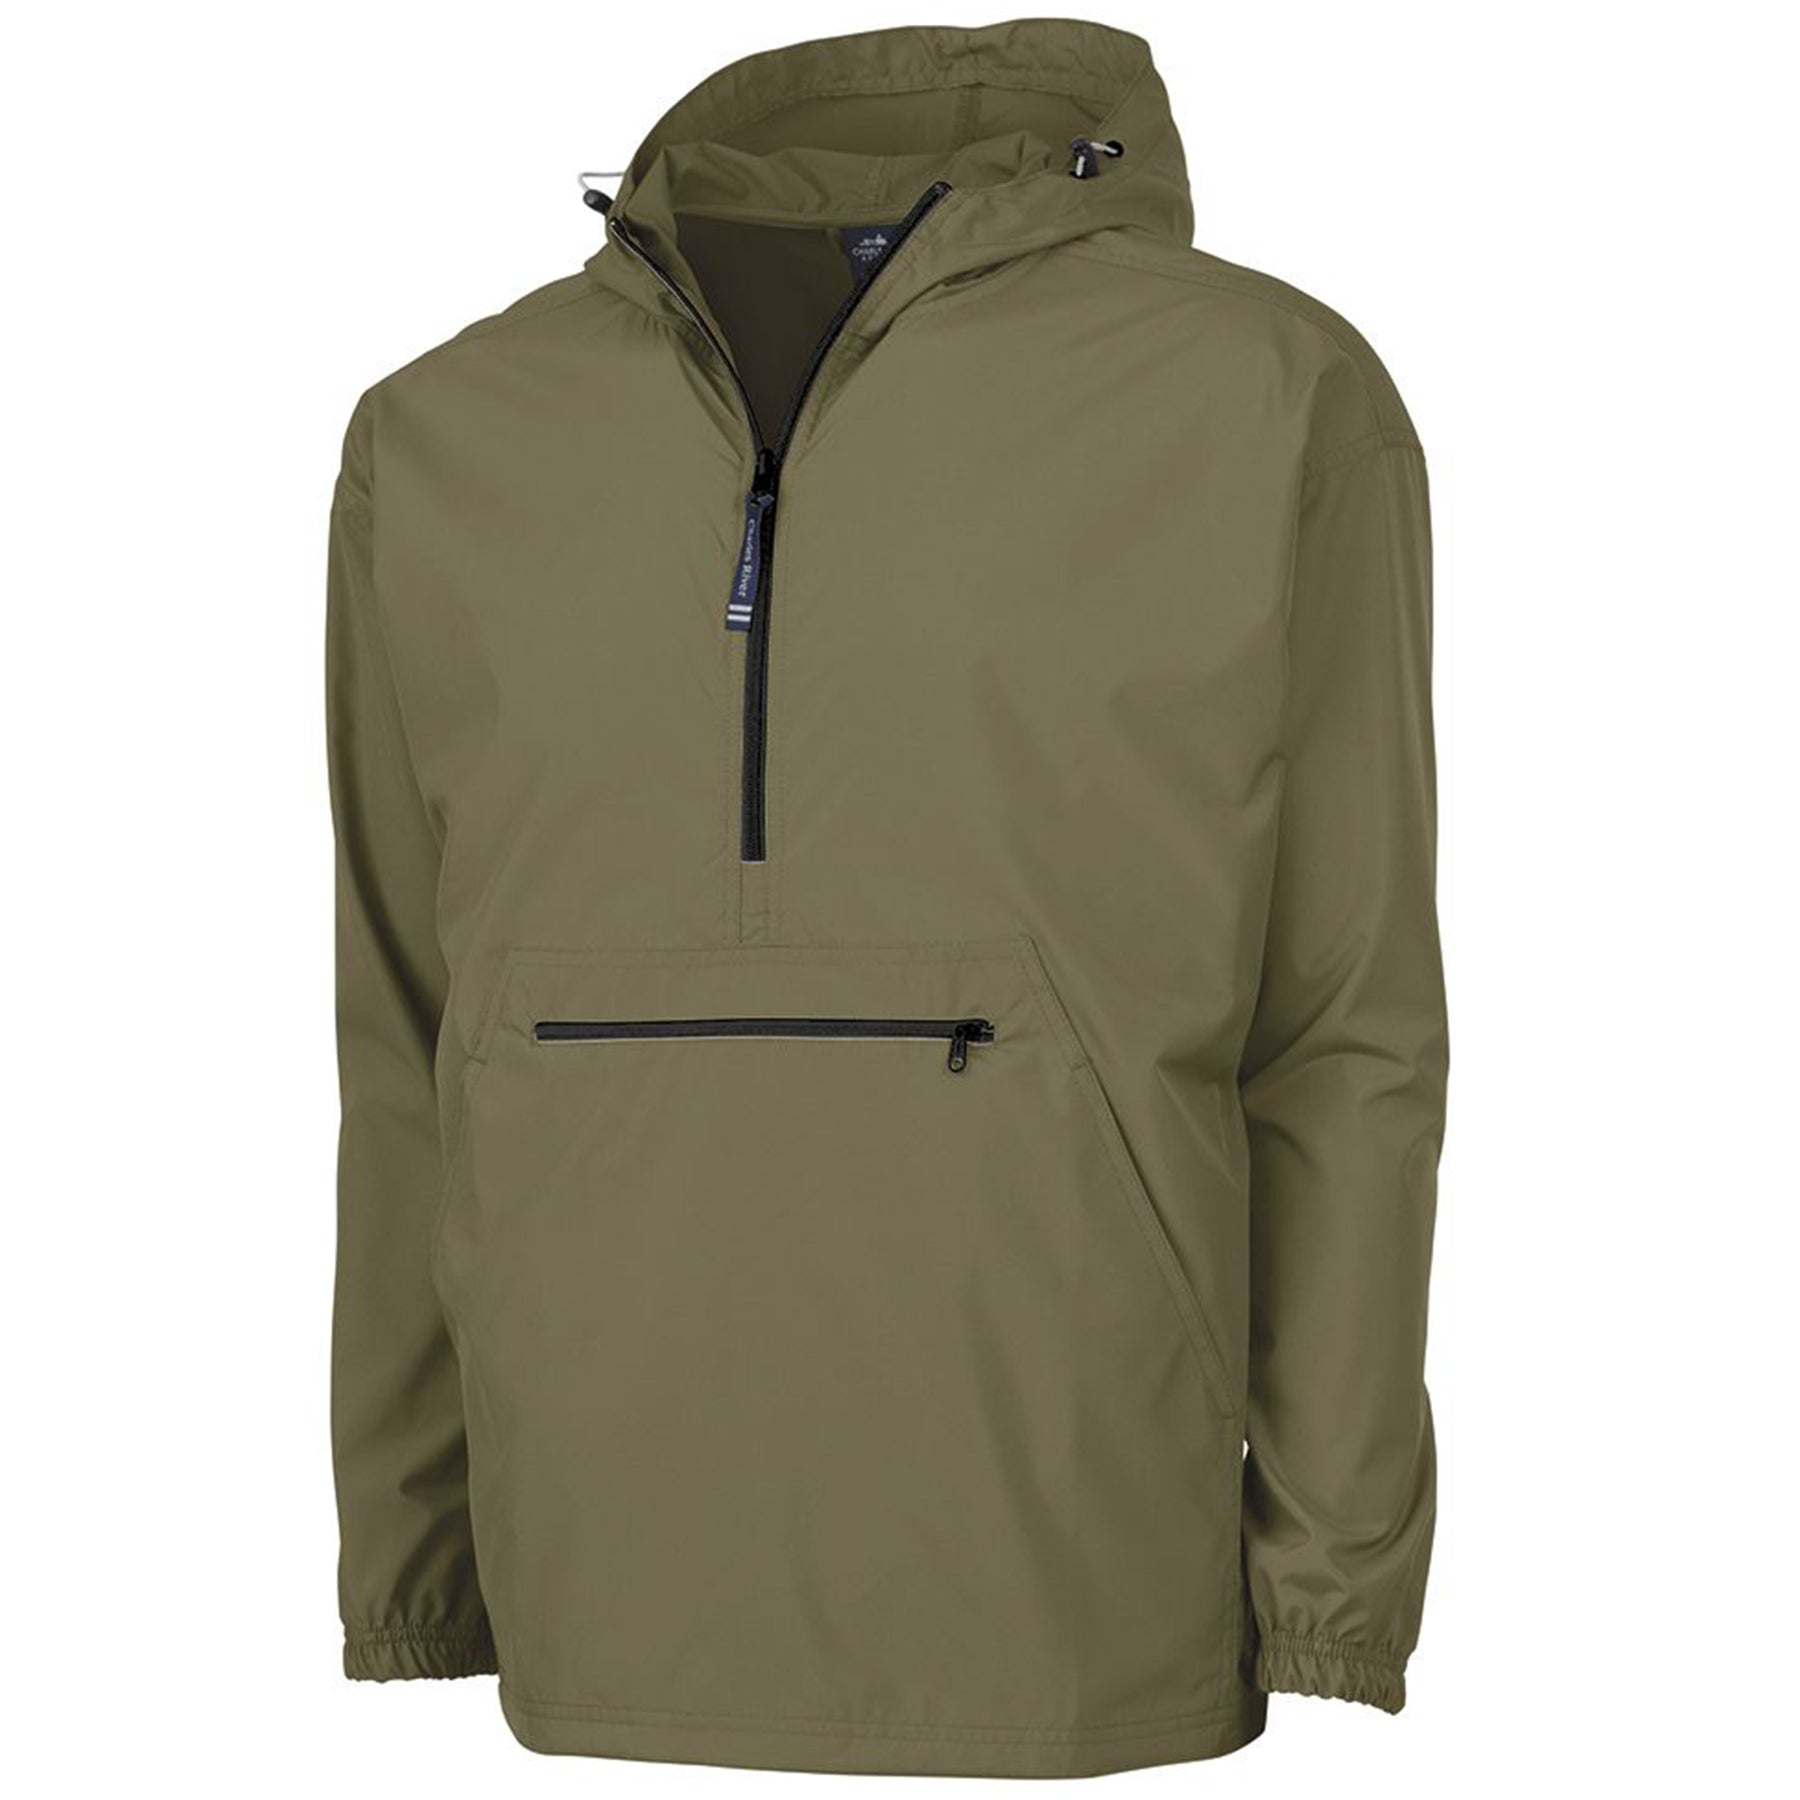 43f2921807cf the olive men s windbreaker anorak jacket is solid olive green with a  quarter zip and front